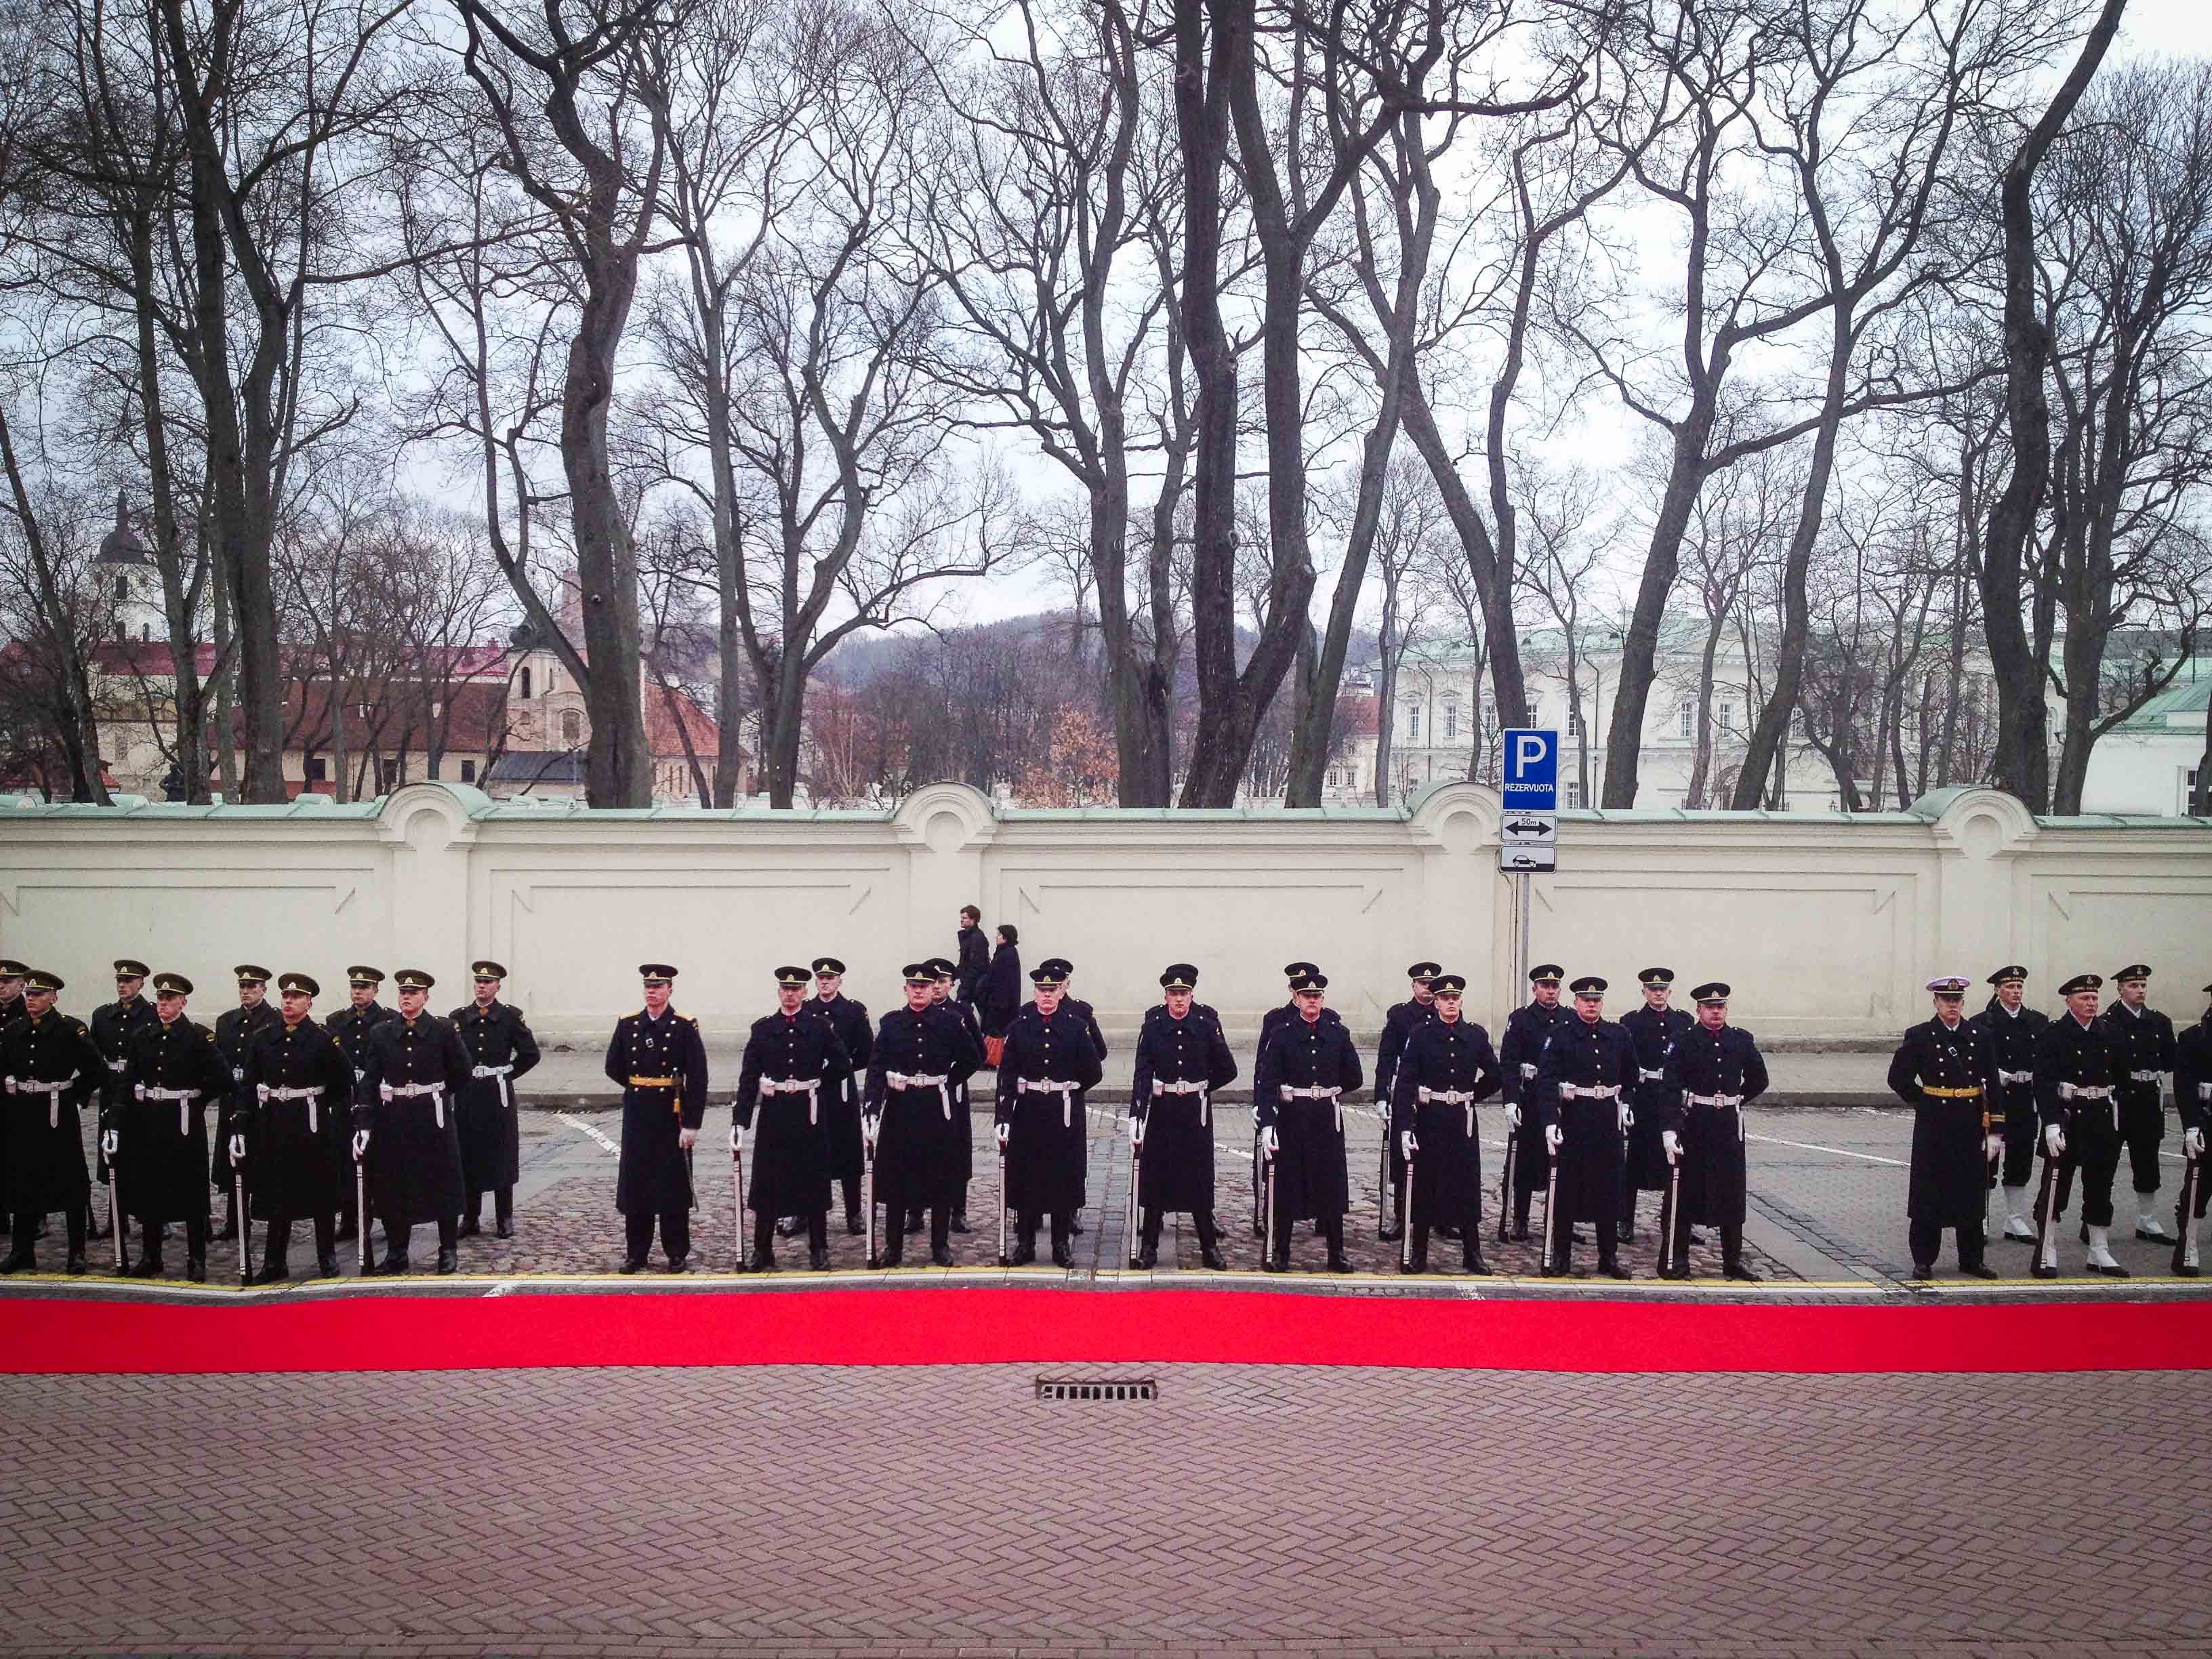 Delegations from all the arms of the Lithuanian Armed Forces. On the left: the infantry; in the middle:  air force; on the right: the navy. © Benoît Theunissen